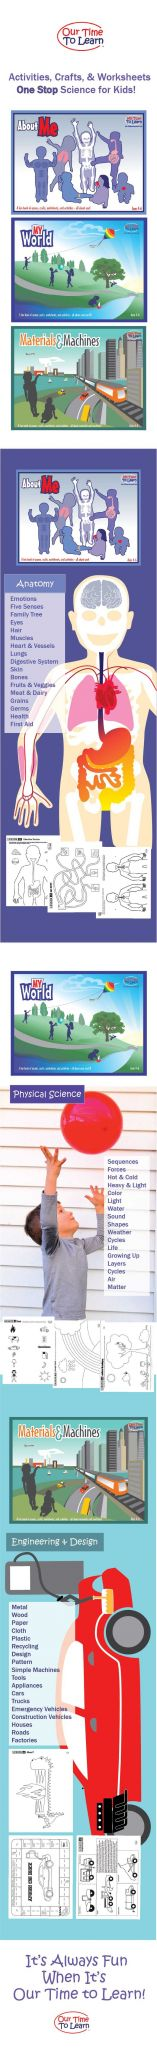 Bill Nye Simple Machines Worksheet together with 41 Best About Me Workbook Images On Pinterest